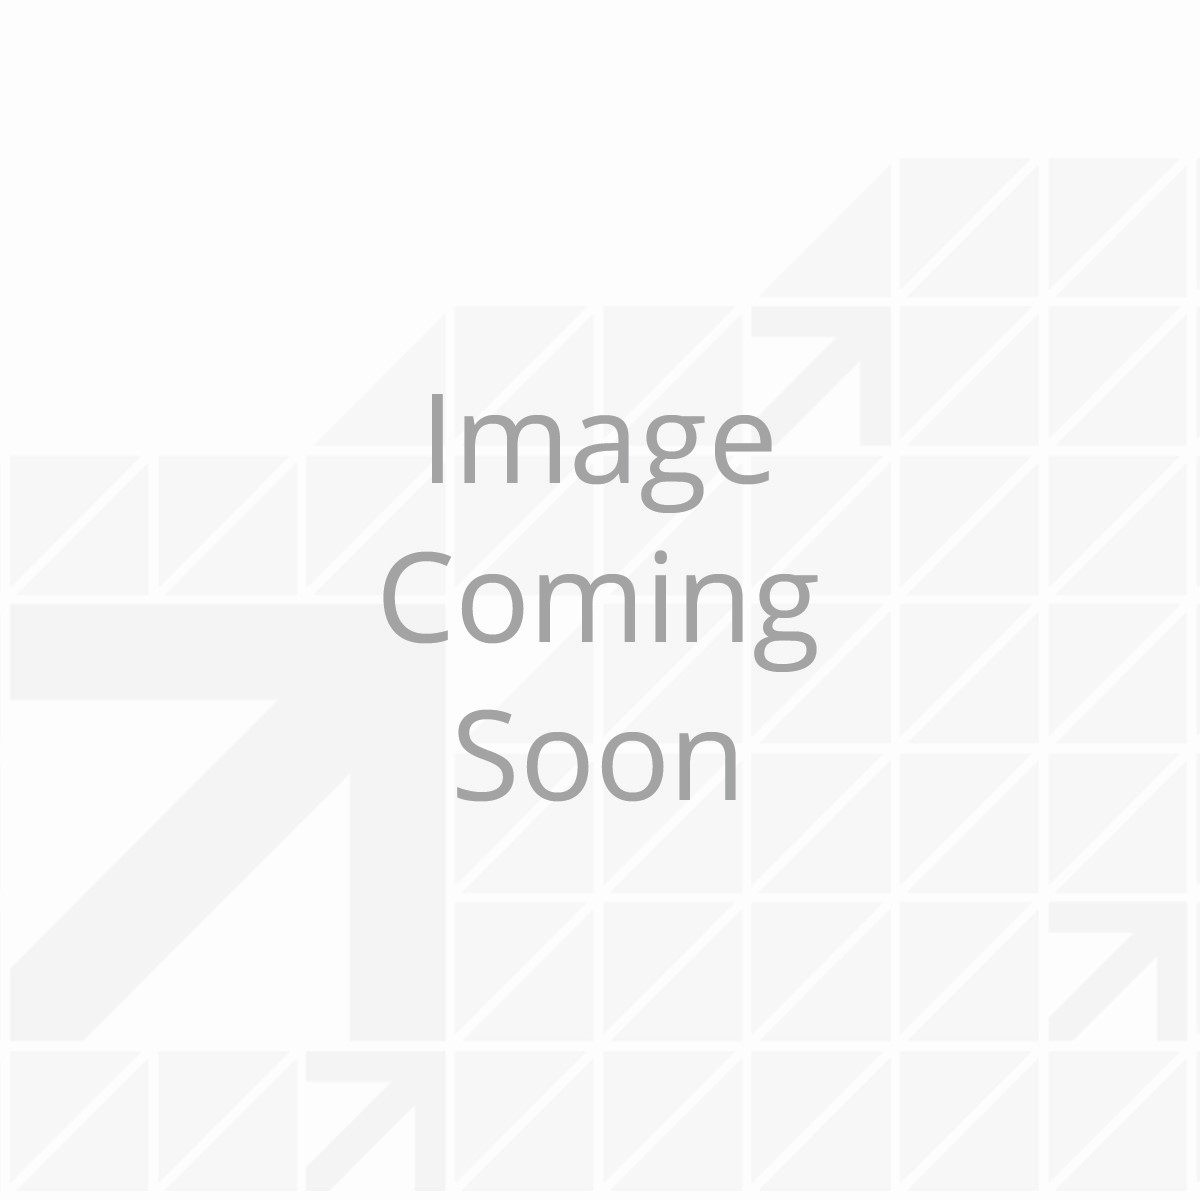 heavy-duty-shackle-link-assembly-2-25-to-hole-centers-wet-bolts